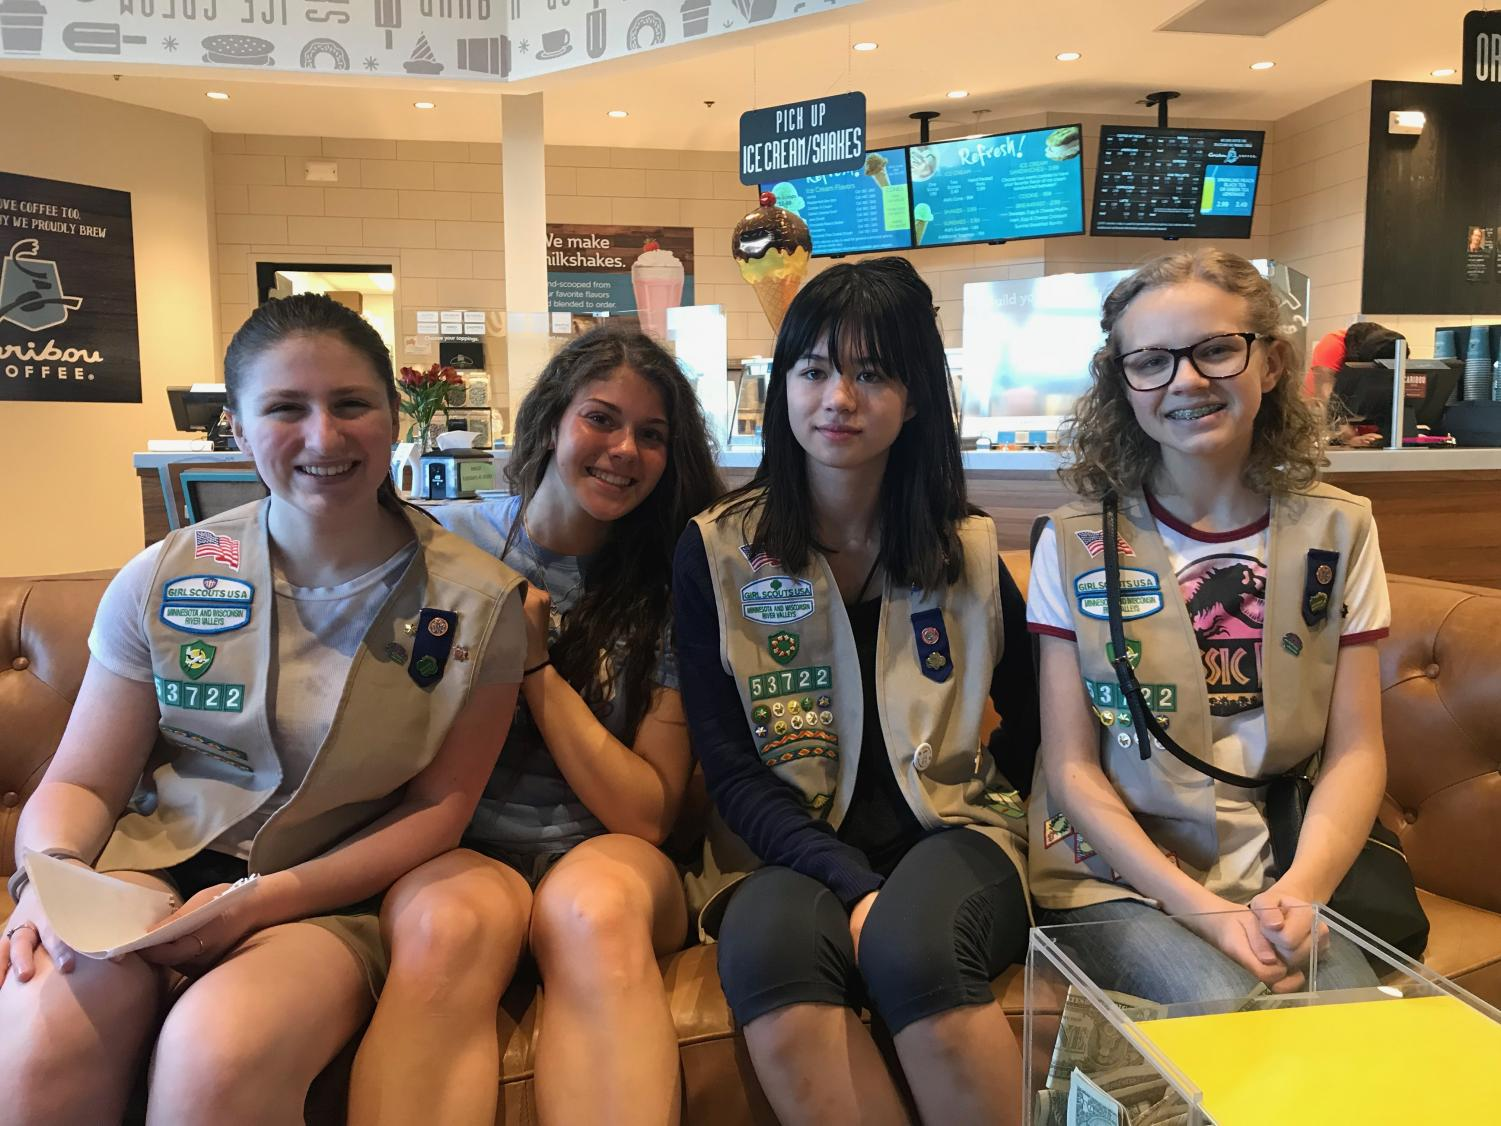 Juniors Emily Shanley and Johanna Teegarden smile big with other Girl Scouts for their leader. Teegarden and Shanley have been in Girl Scouts together since first grade.